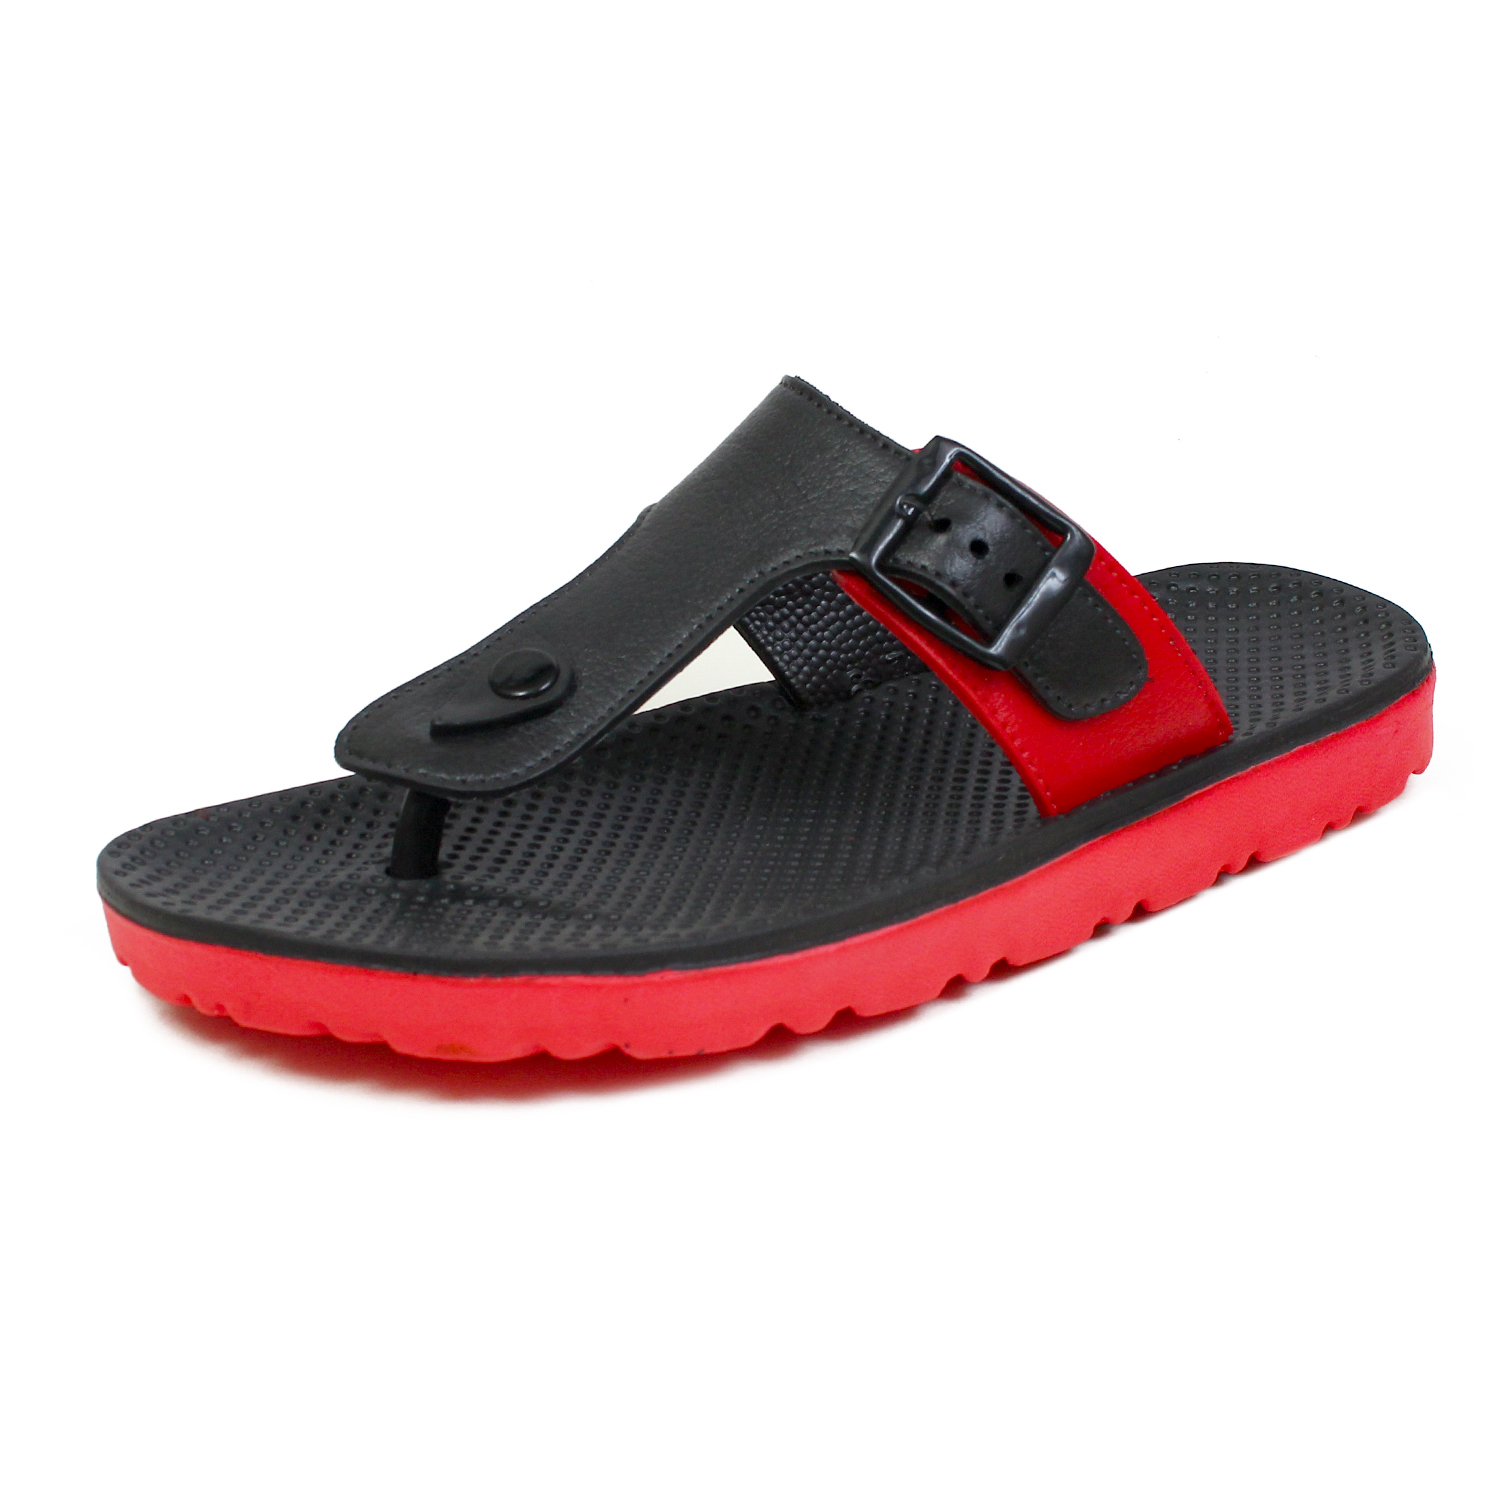 Foot Trends Stylish Casual Slipper For Men Tiger Red TigerRd6-9 (Size, 6-9, 4 PAIR)